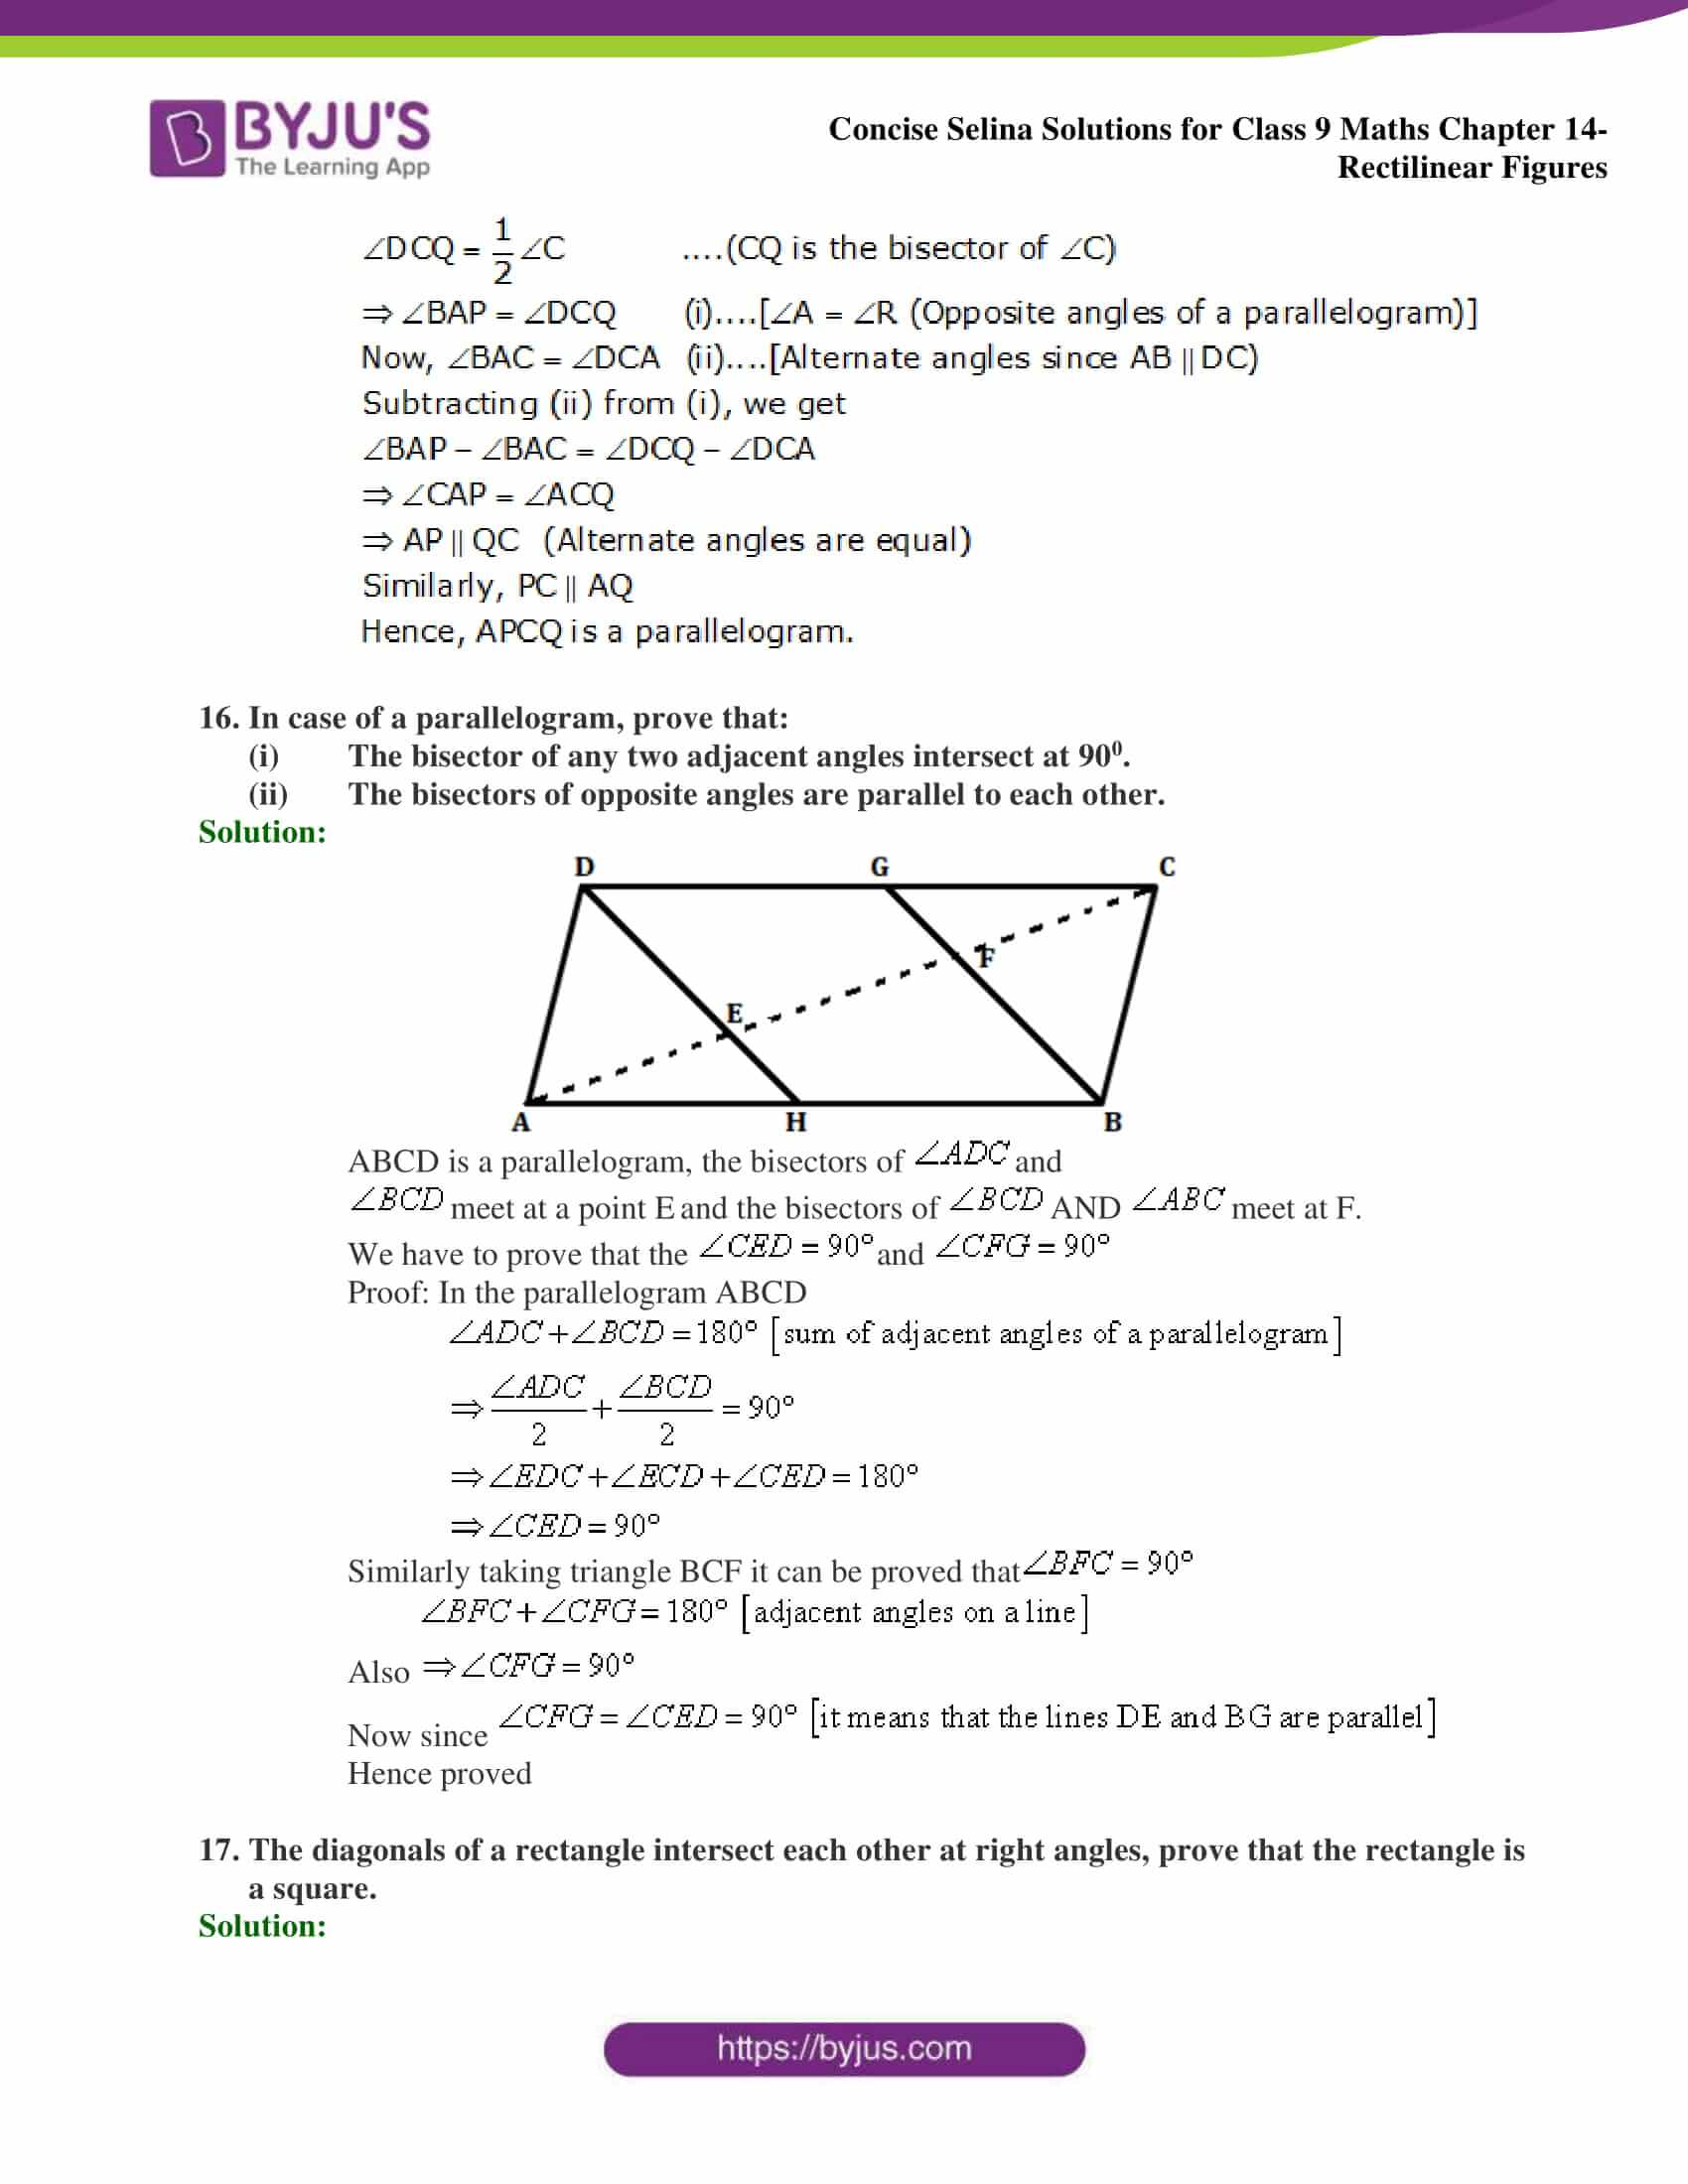 selina Solutions for Class 9 Maths Chapter 14 part 30